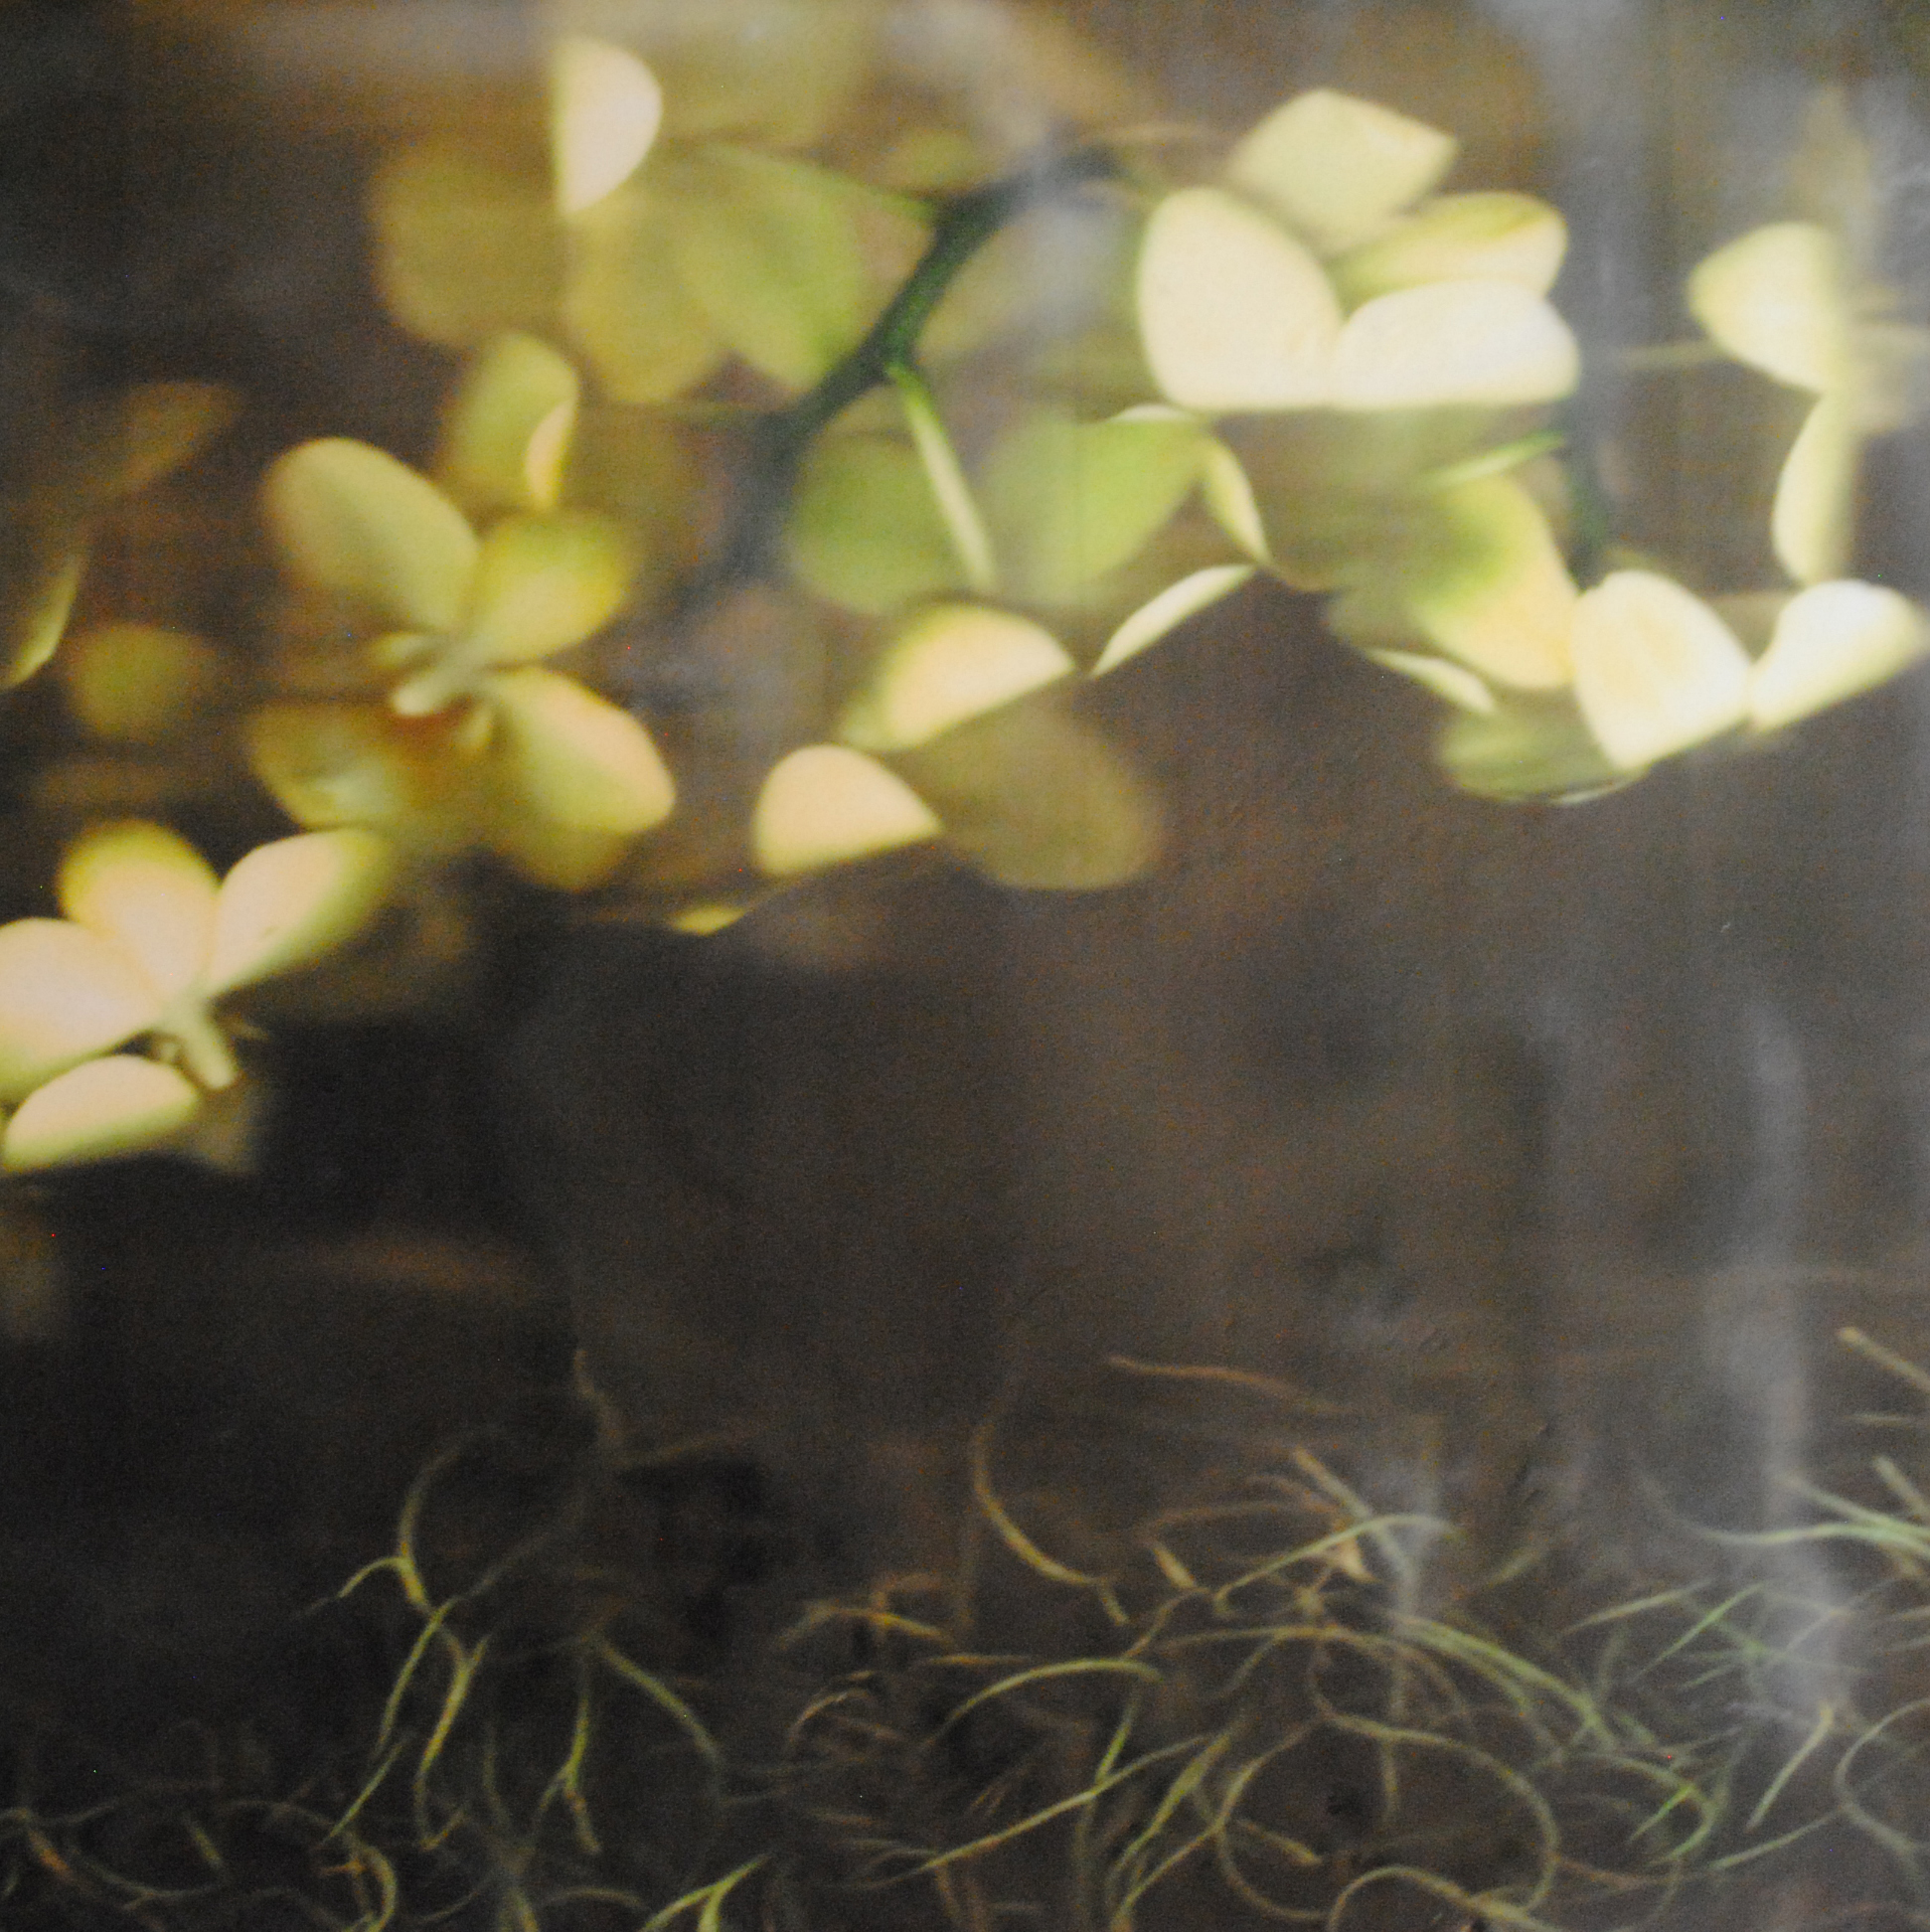 Yellow Orchids , 2018, handheld wand digital scan and print, mounted on panel, fused with wax. Image courtesy of the artist.